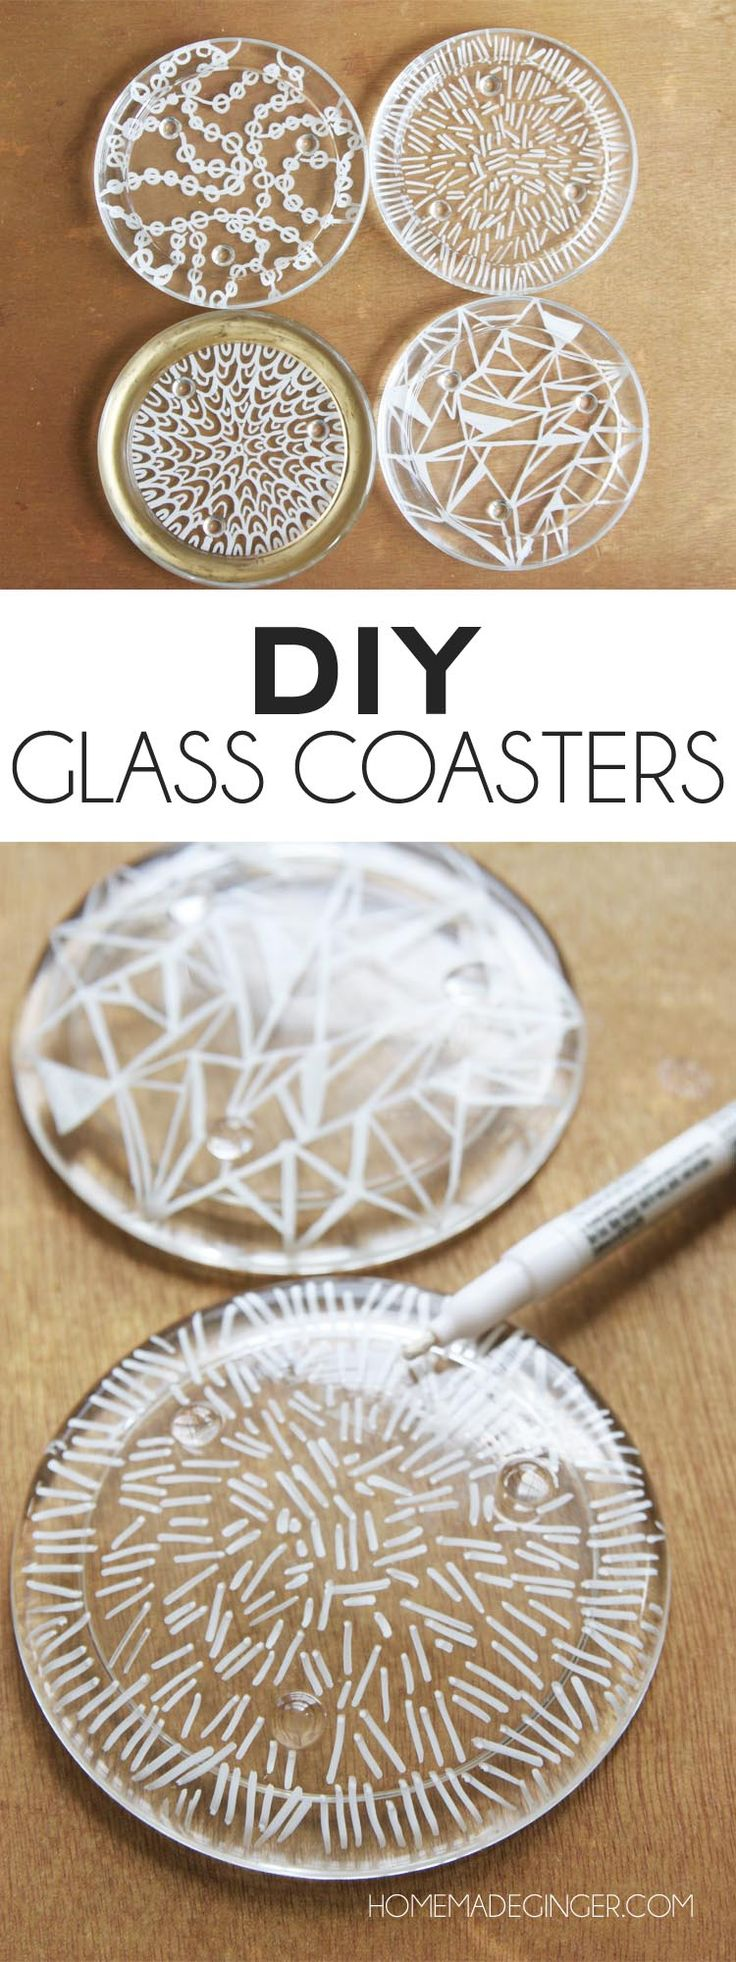 Turn glass candle plates into DIY coasters with this easy tutorial!